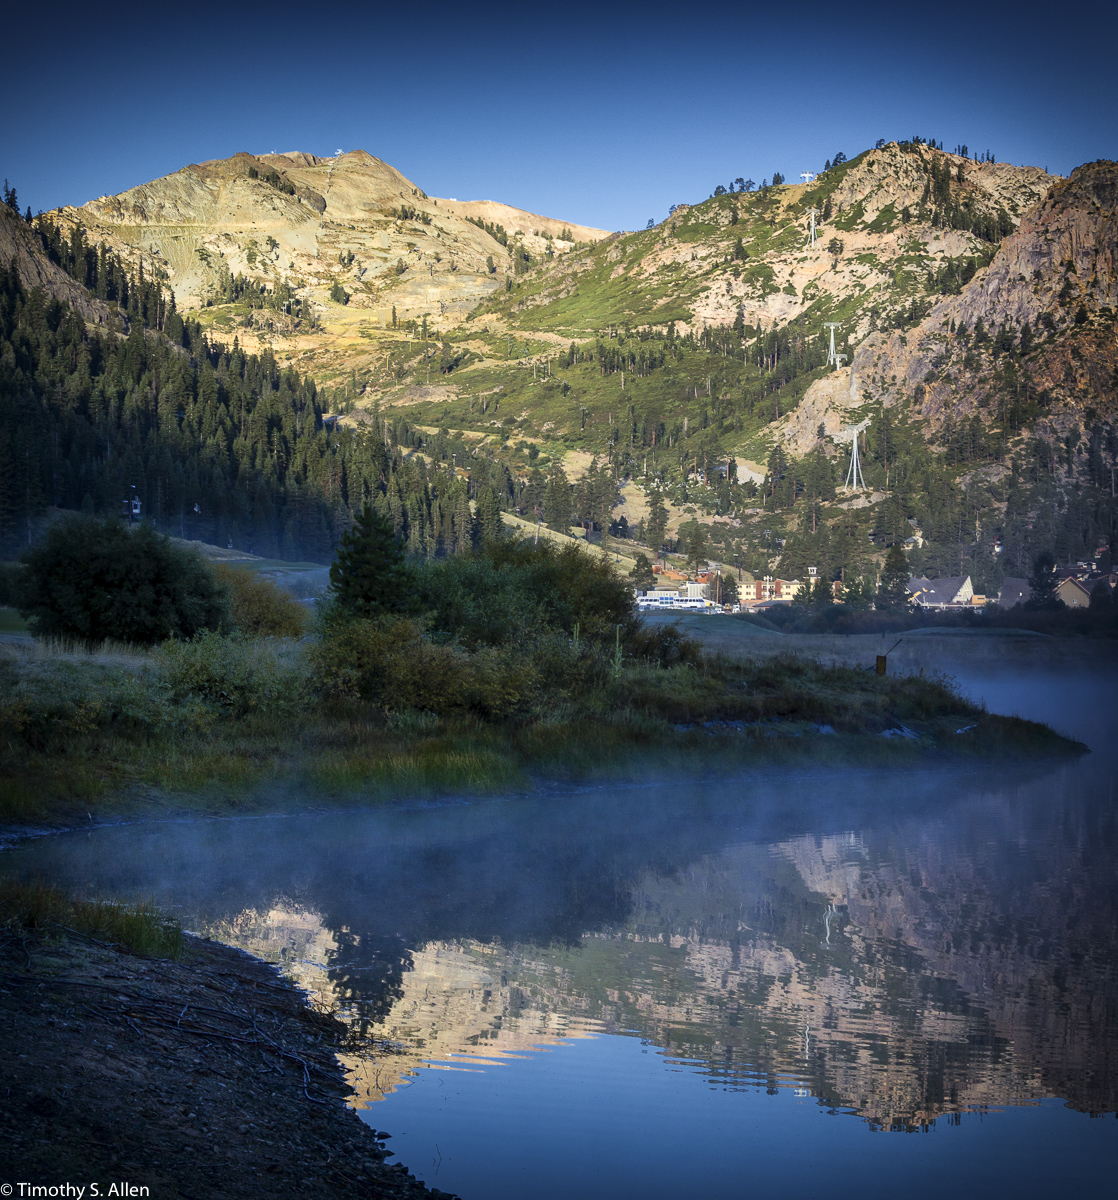 Squaw Creek Resort, Olympic Valley, CA, USA August 17, 2015